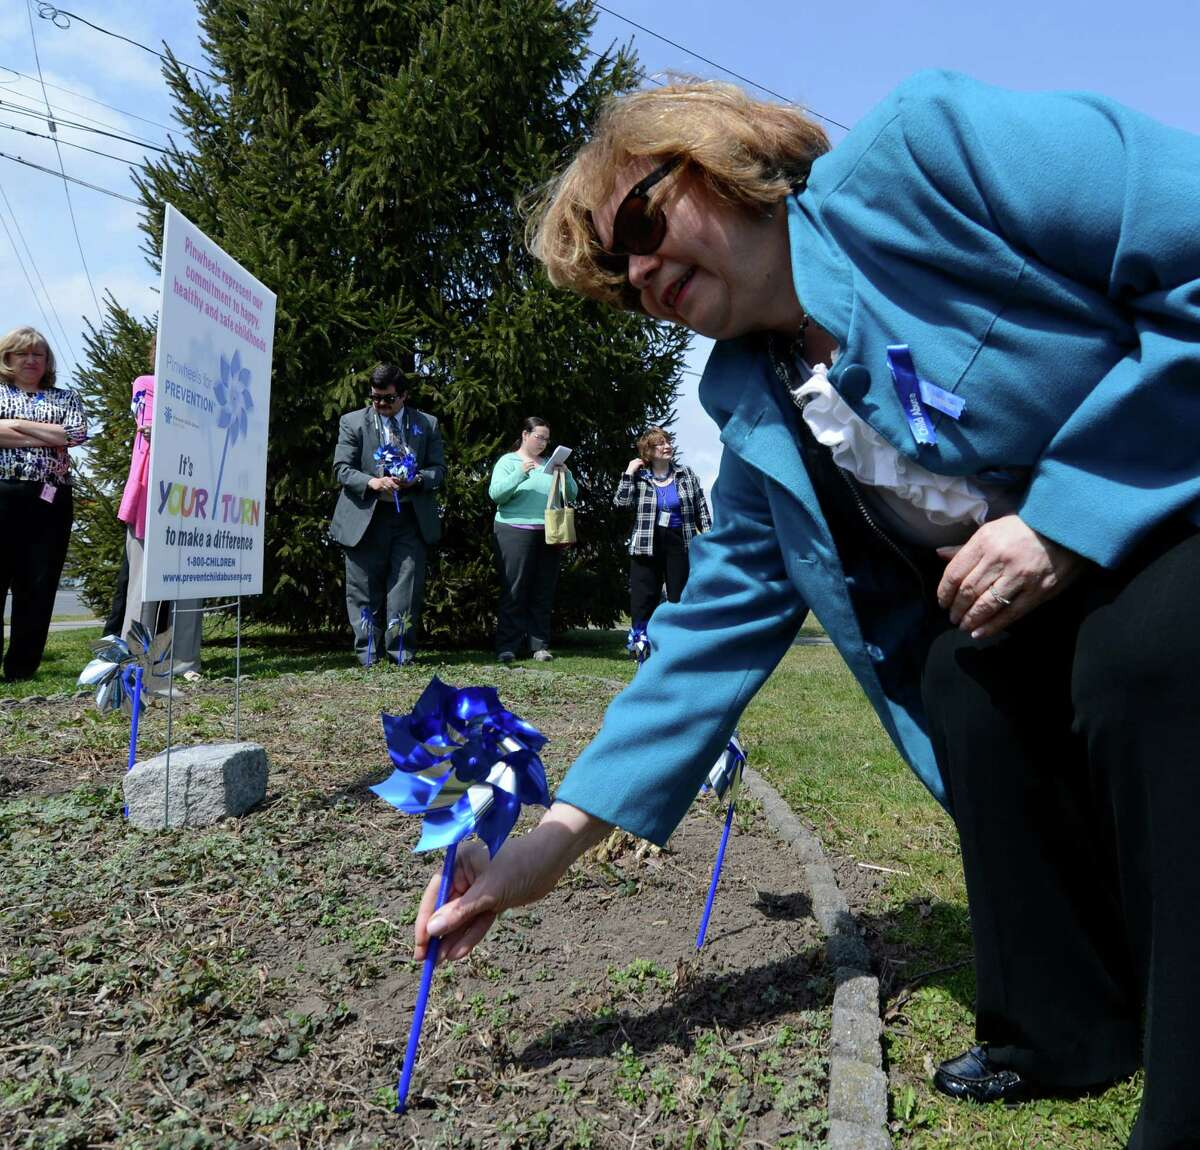 Gladys Carrion, commissioner of the state Office of Children and Family Services, plants the first pinwheel in the Pinwheels for Prevention Garden at Huyck Square on Monday afternoon in Rensselaer, N.Y. Pinwheels for Prevention is the name of the program that donates funds to the prevention of child abuse. (Skip Dickstein/Times Union)